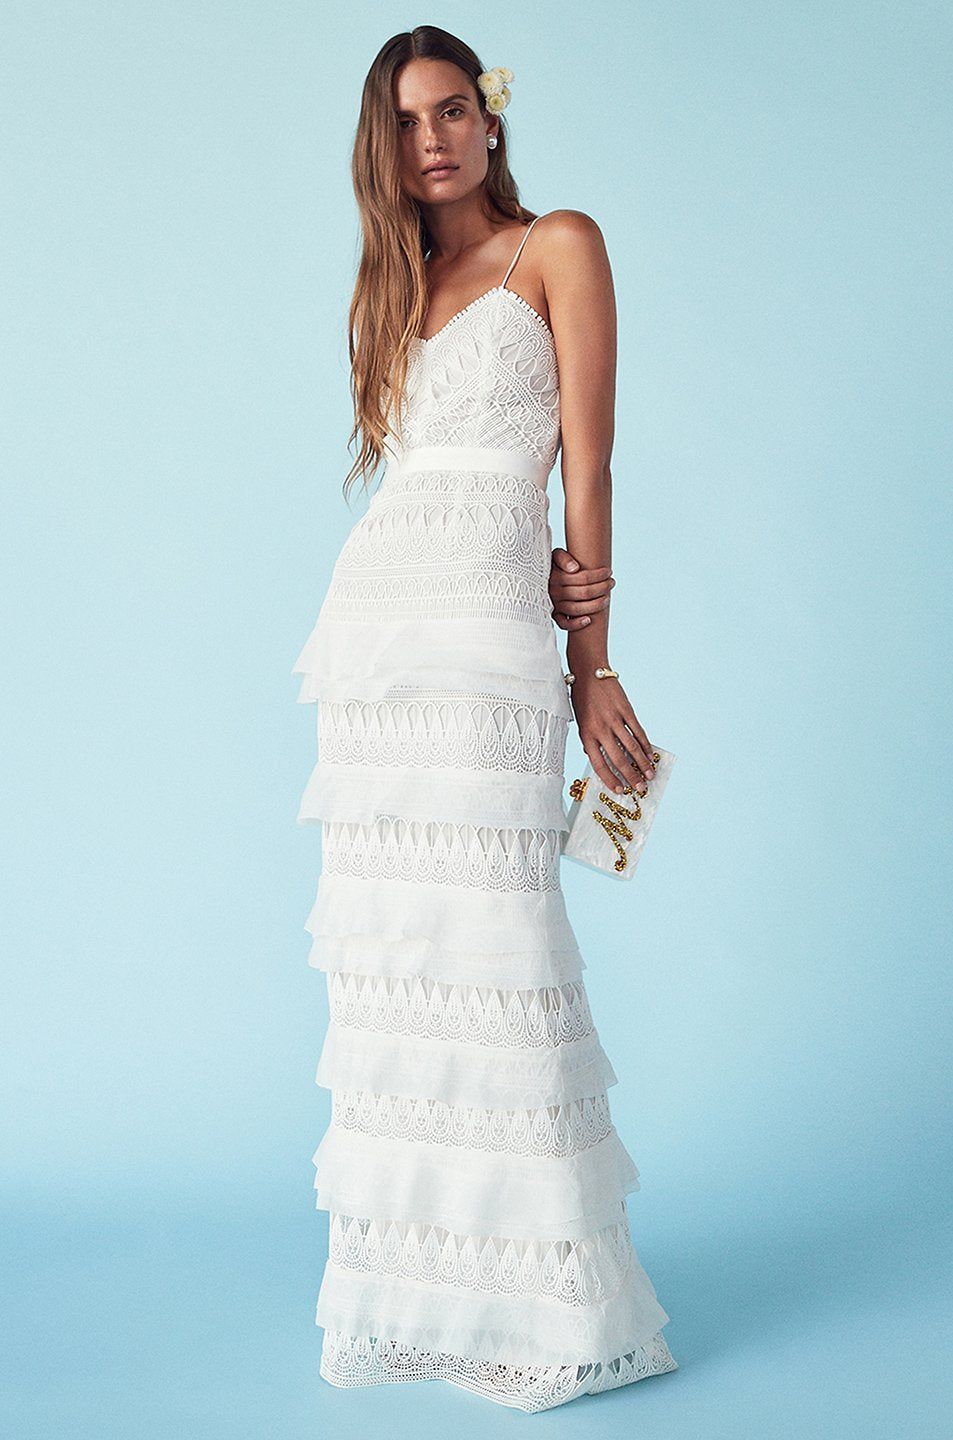 Wedding Bridal Dress Maxi White Embroidered Lace Tiered Gown Dior ...